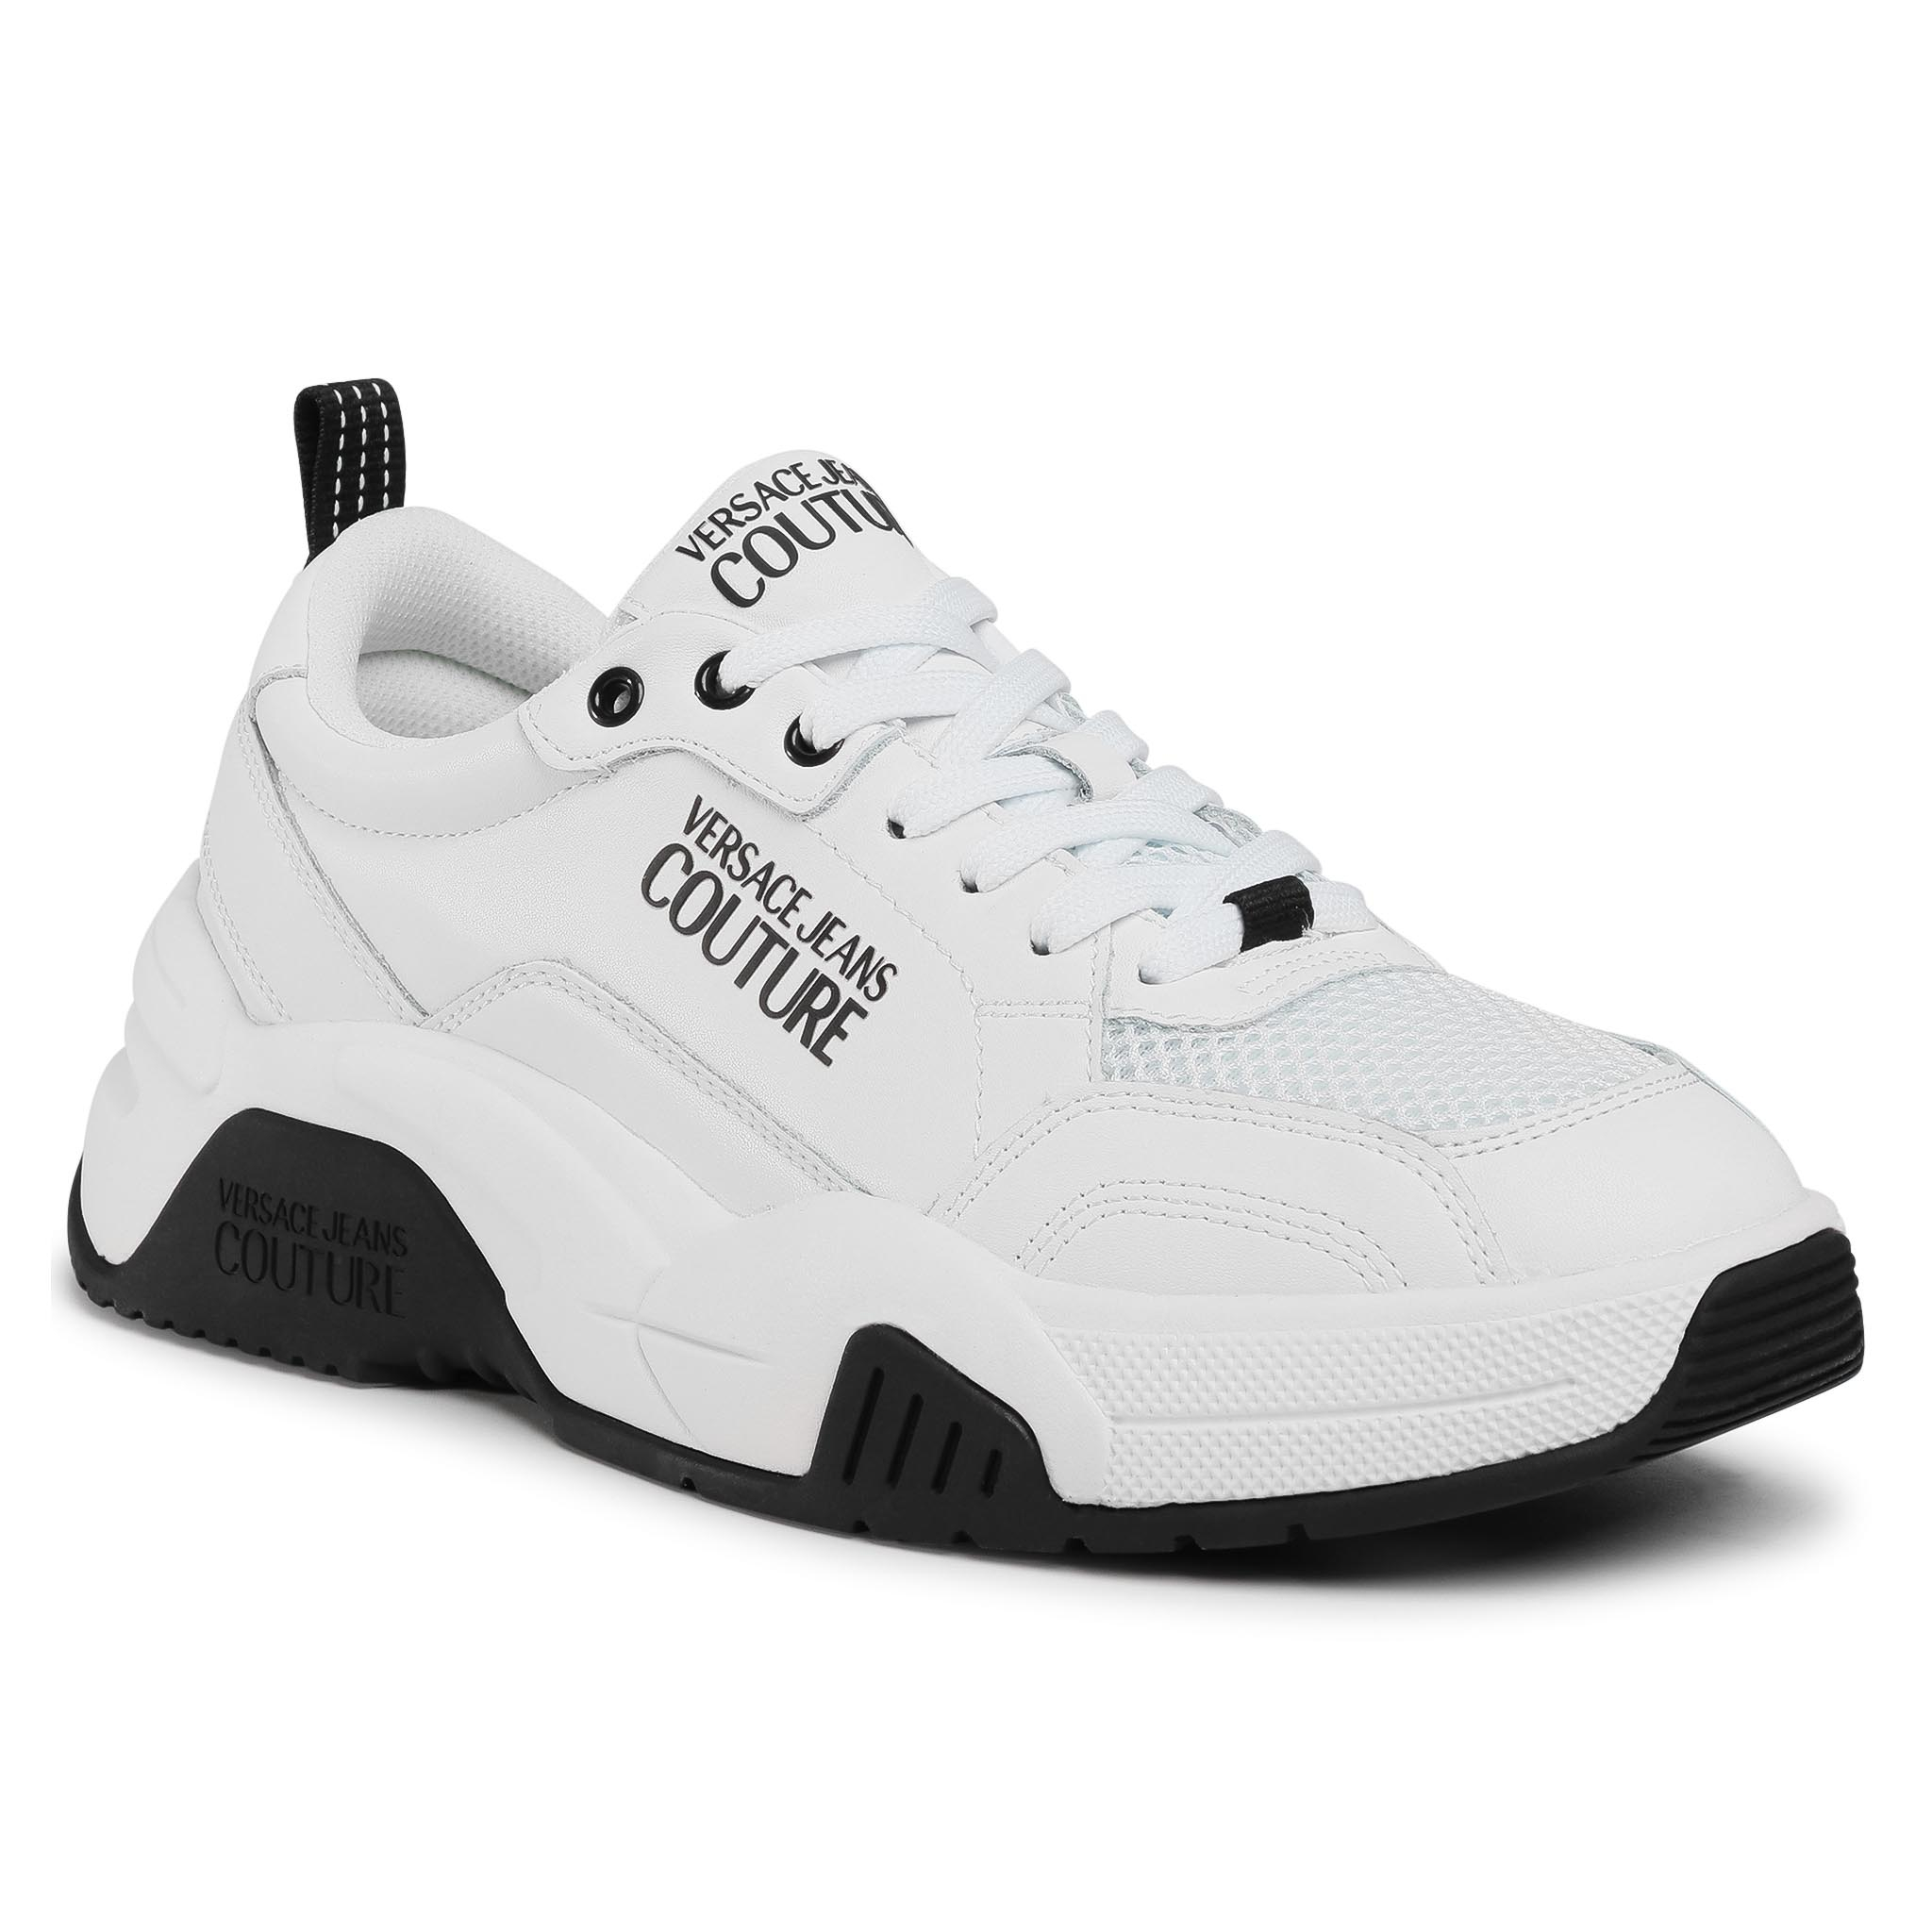 Sneakers VERSACE JEANS COUTURE - E0YZASF6 71622 003